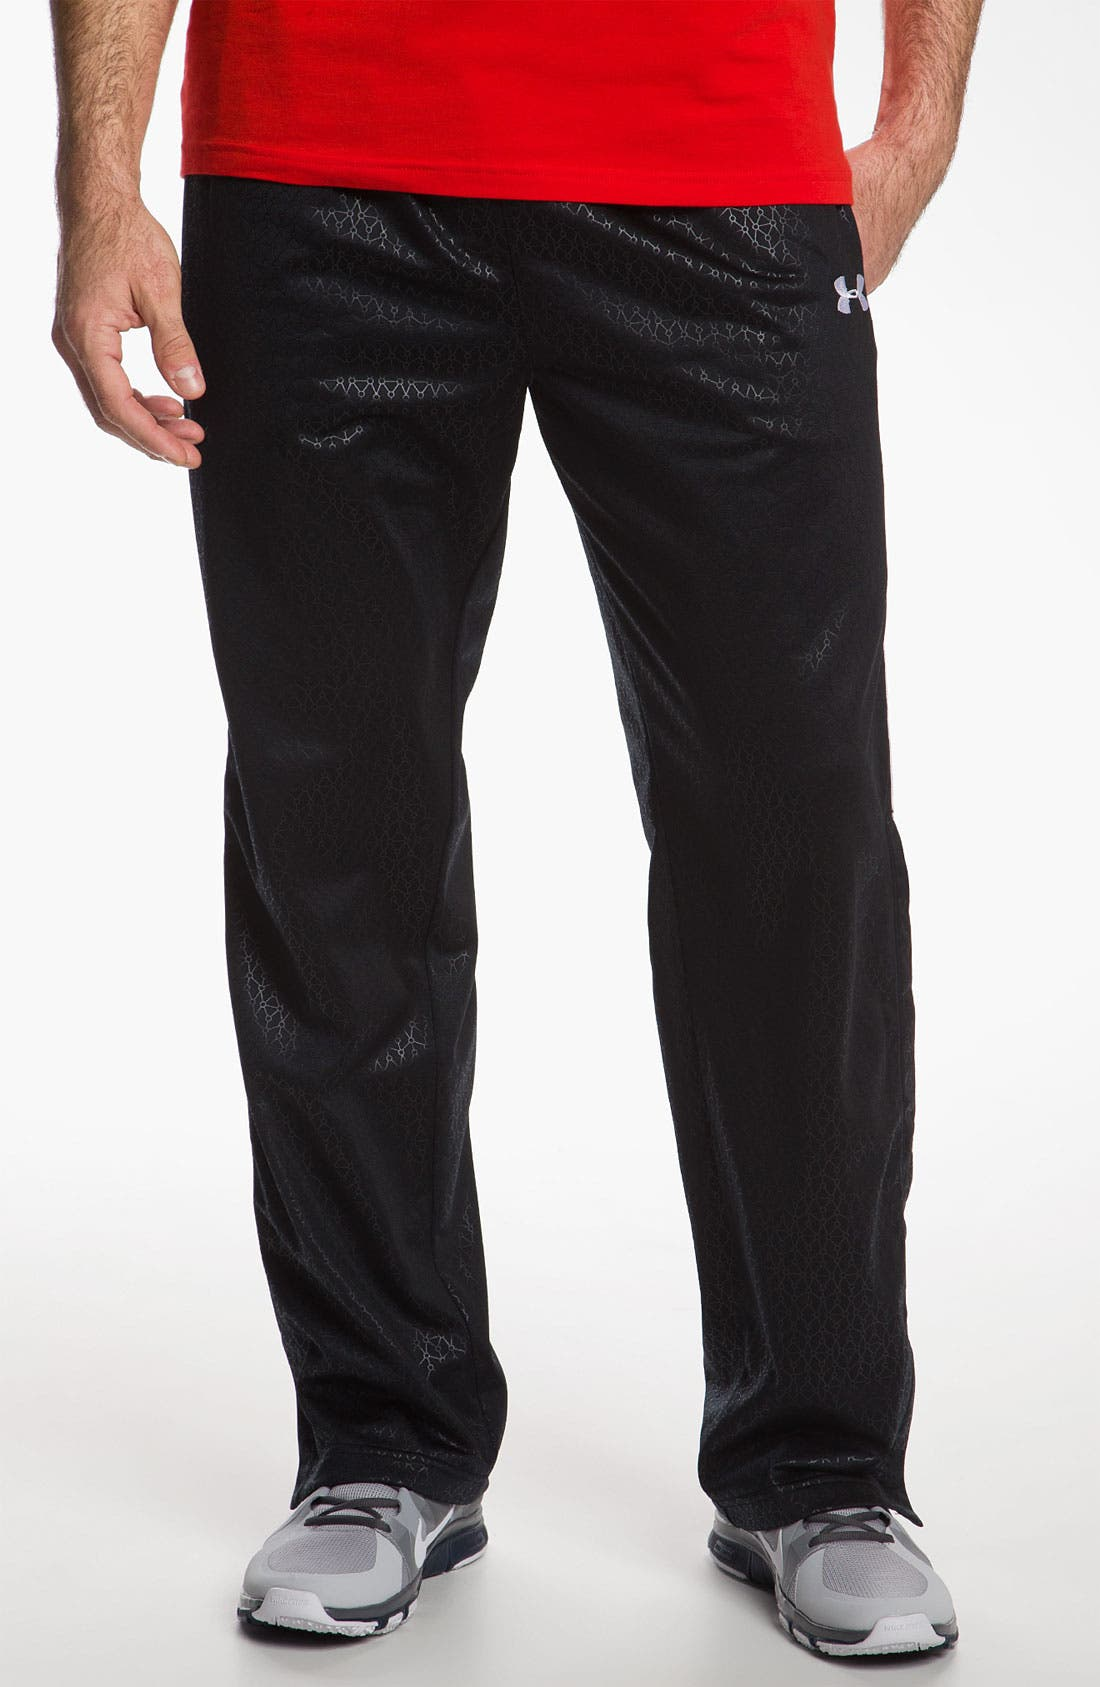 Main Image - Under Armour 'Pledge' Track Pants (Online Only)